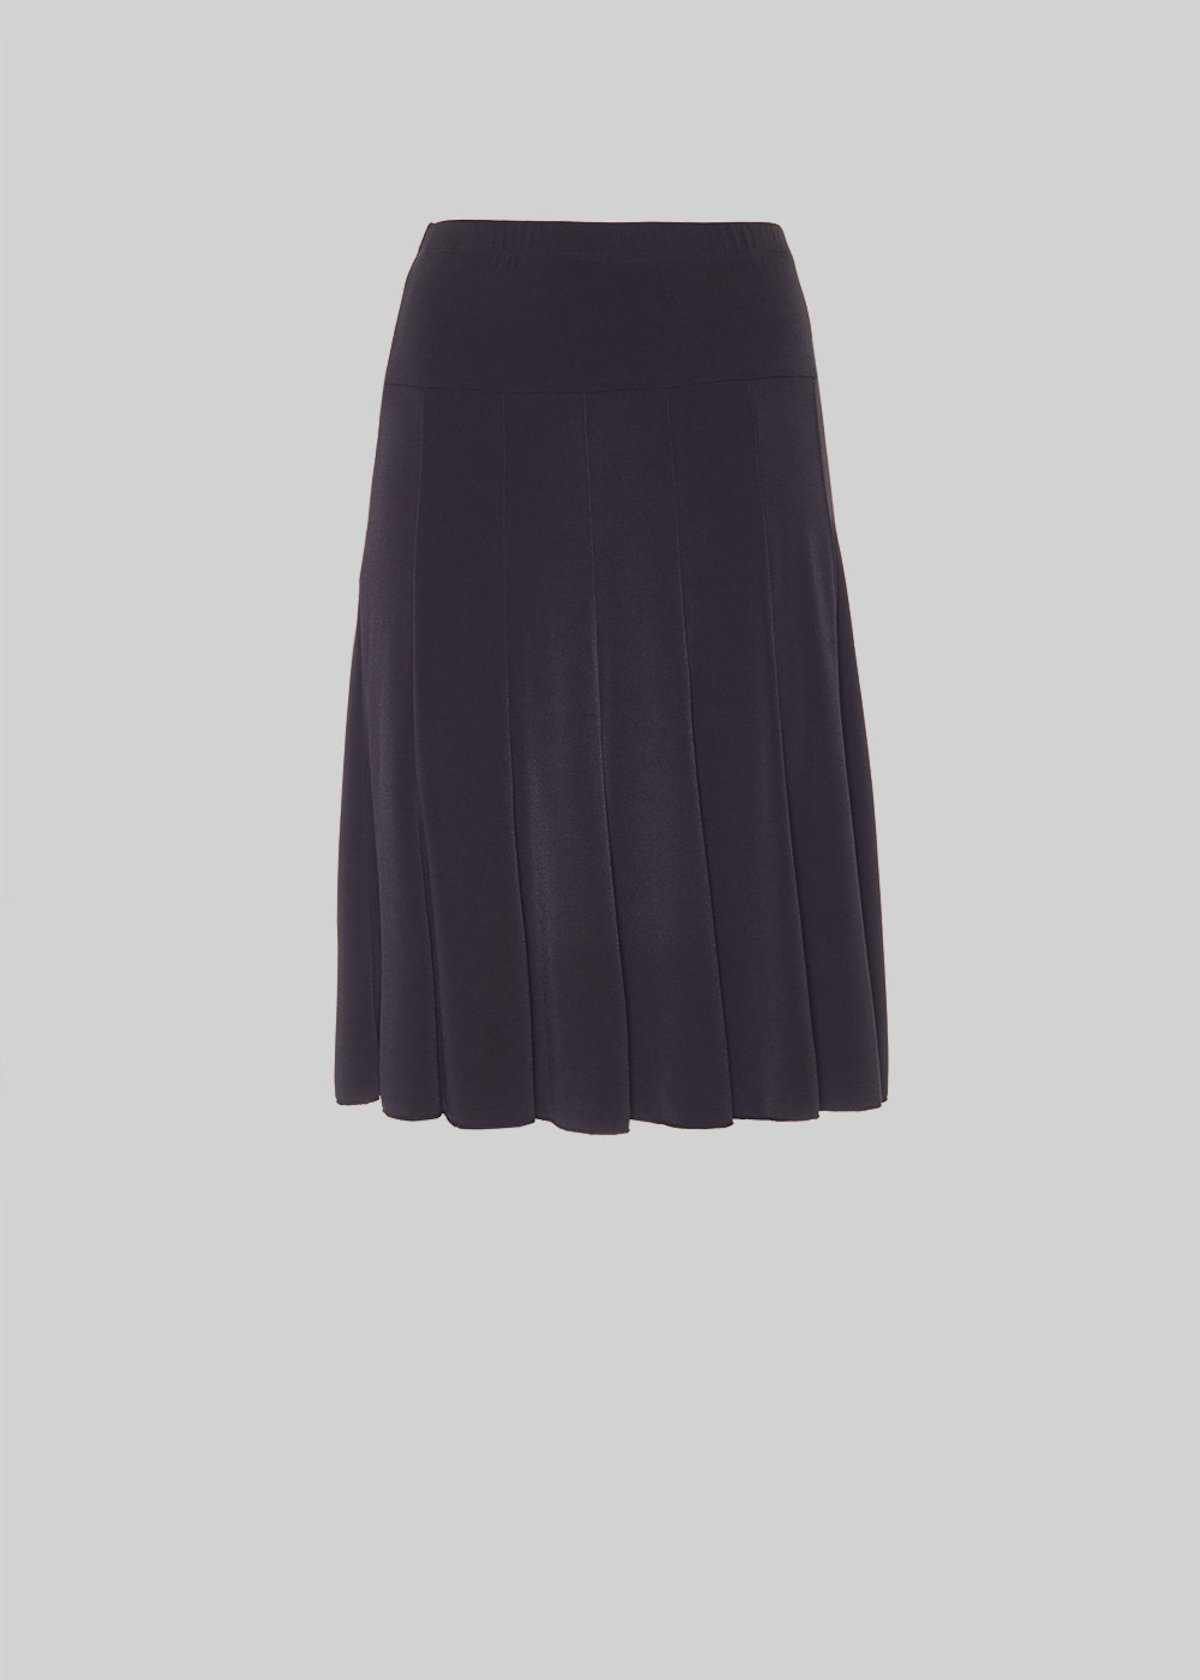 Goya skirt with jersey godets